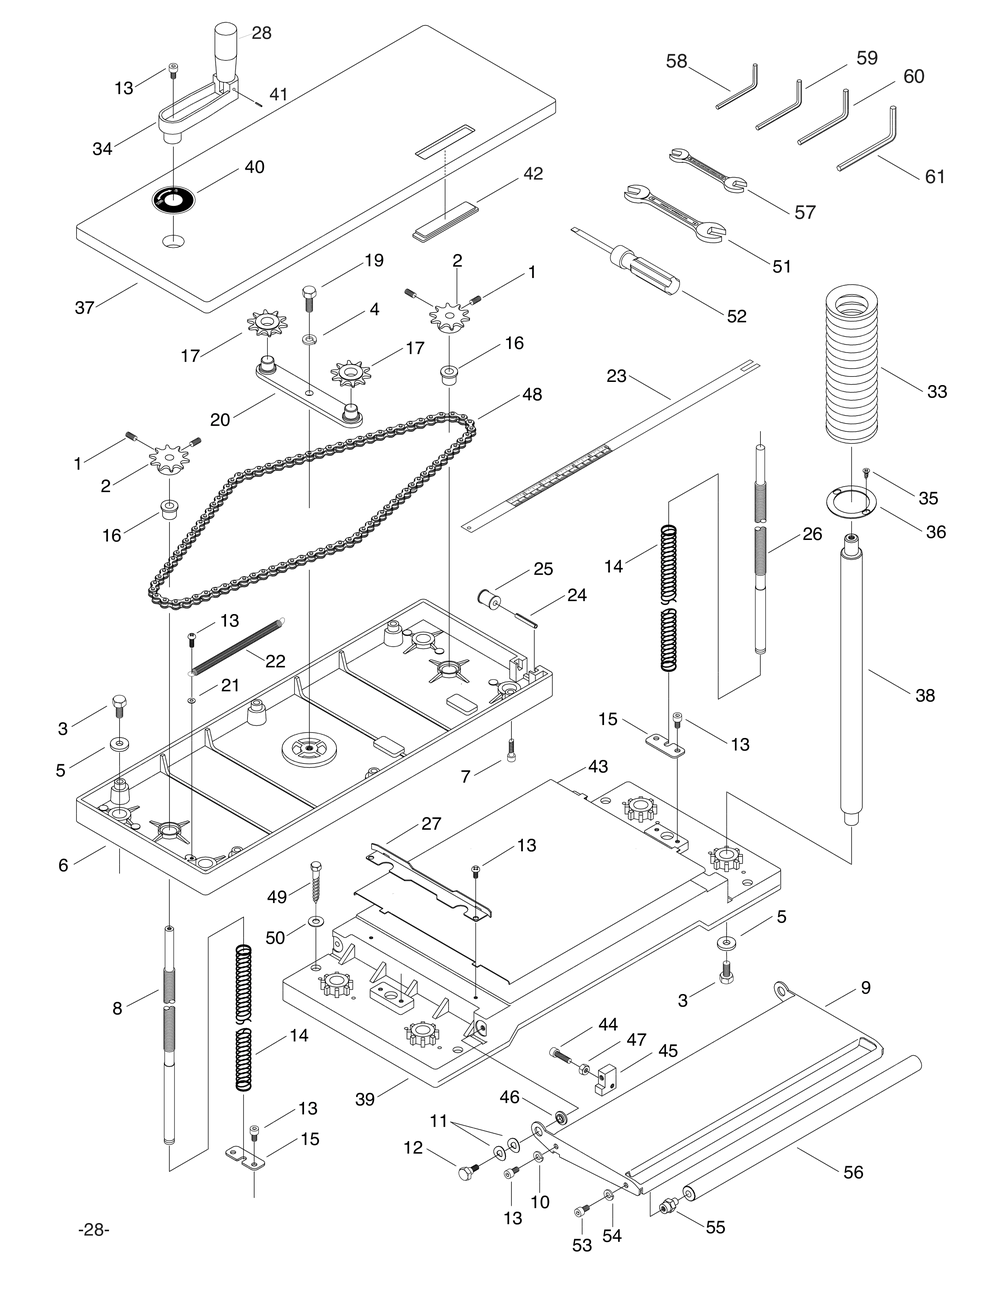 G1017 pl 5 1000 fort air wiring diagram on fort download wirning diagrams air handling unit diagram at aneh